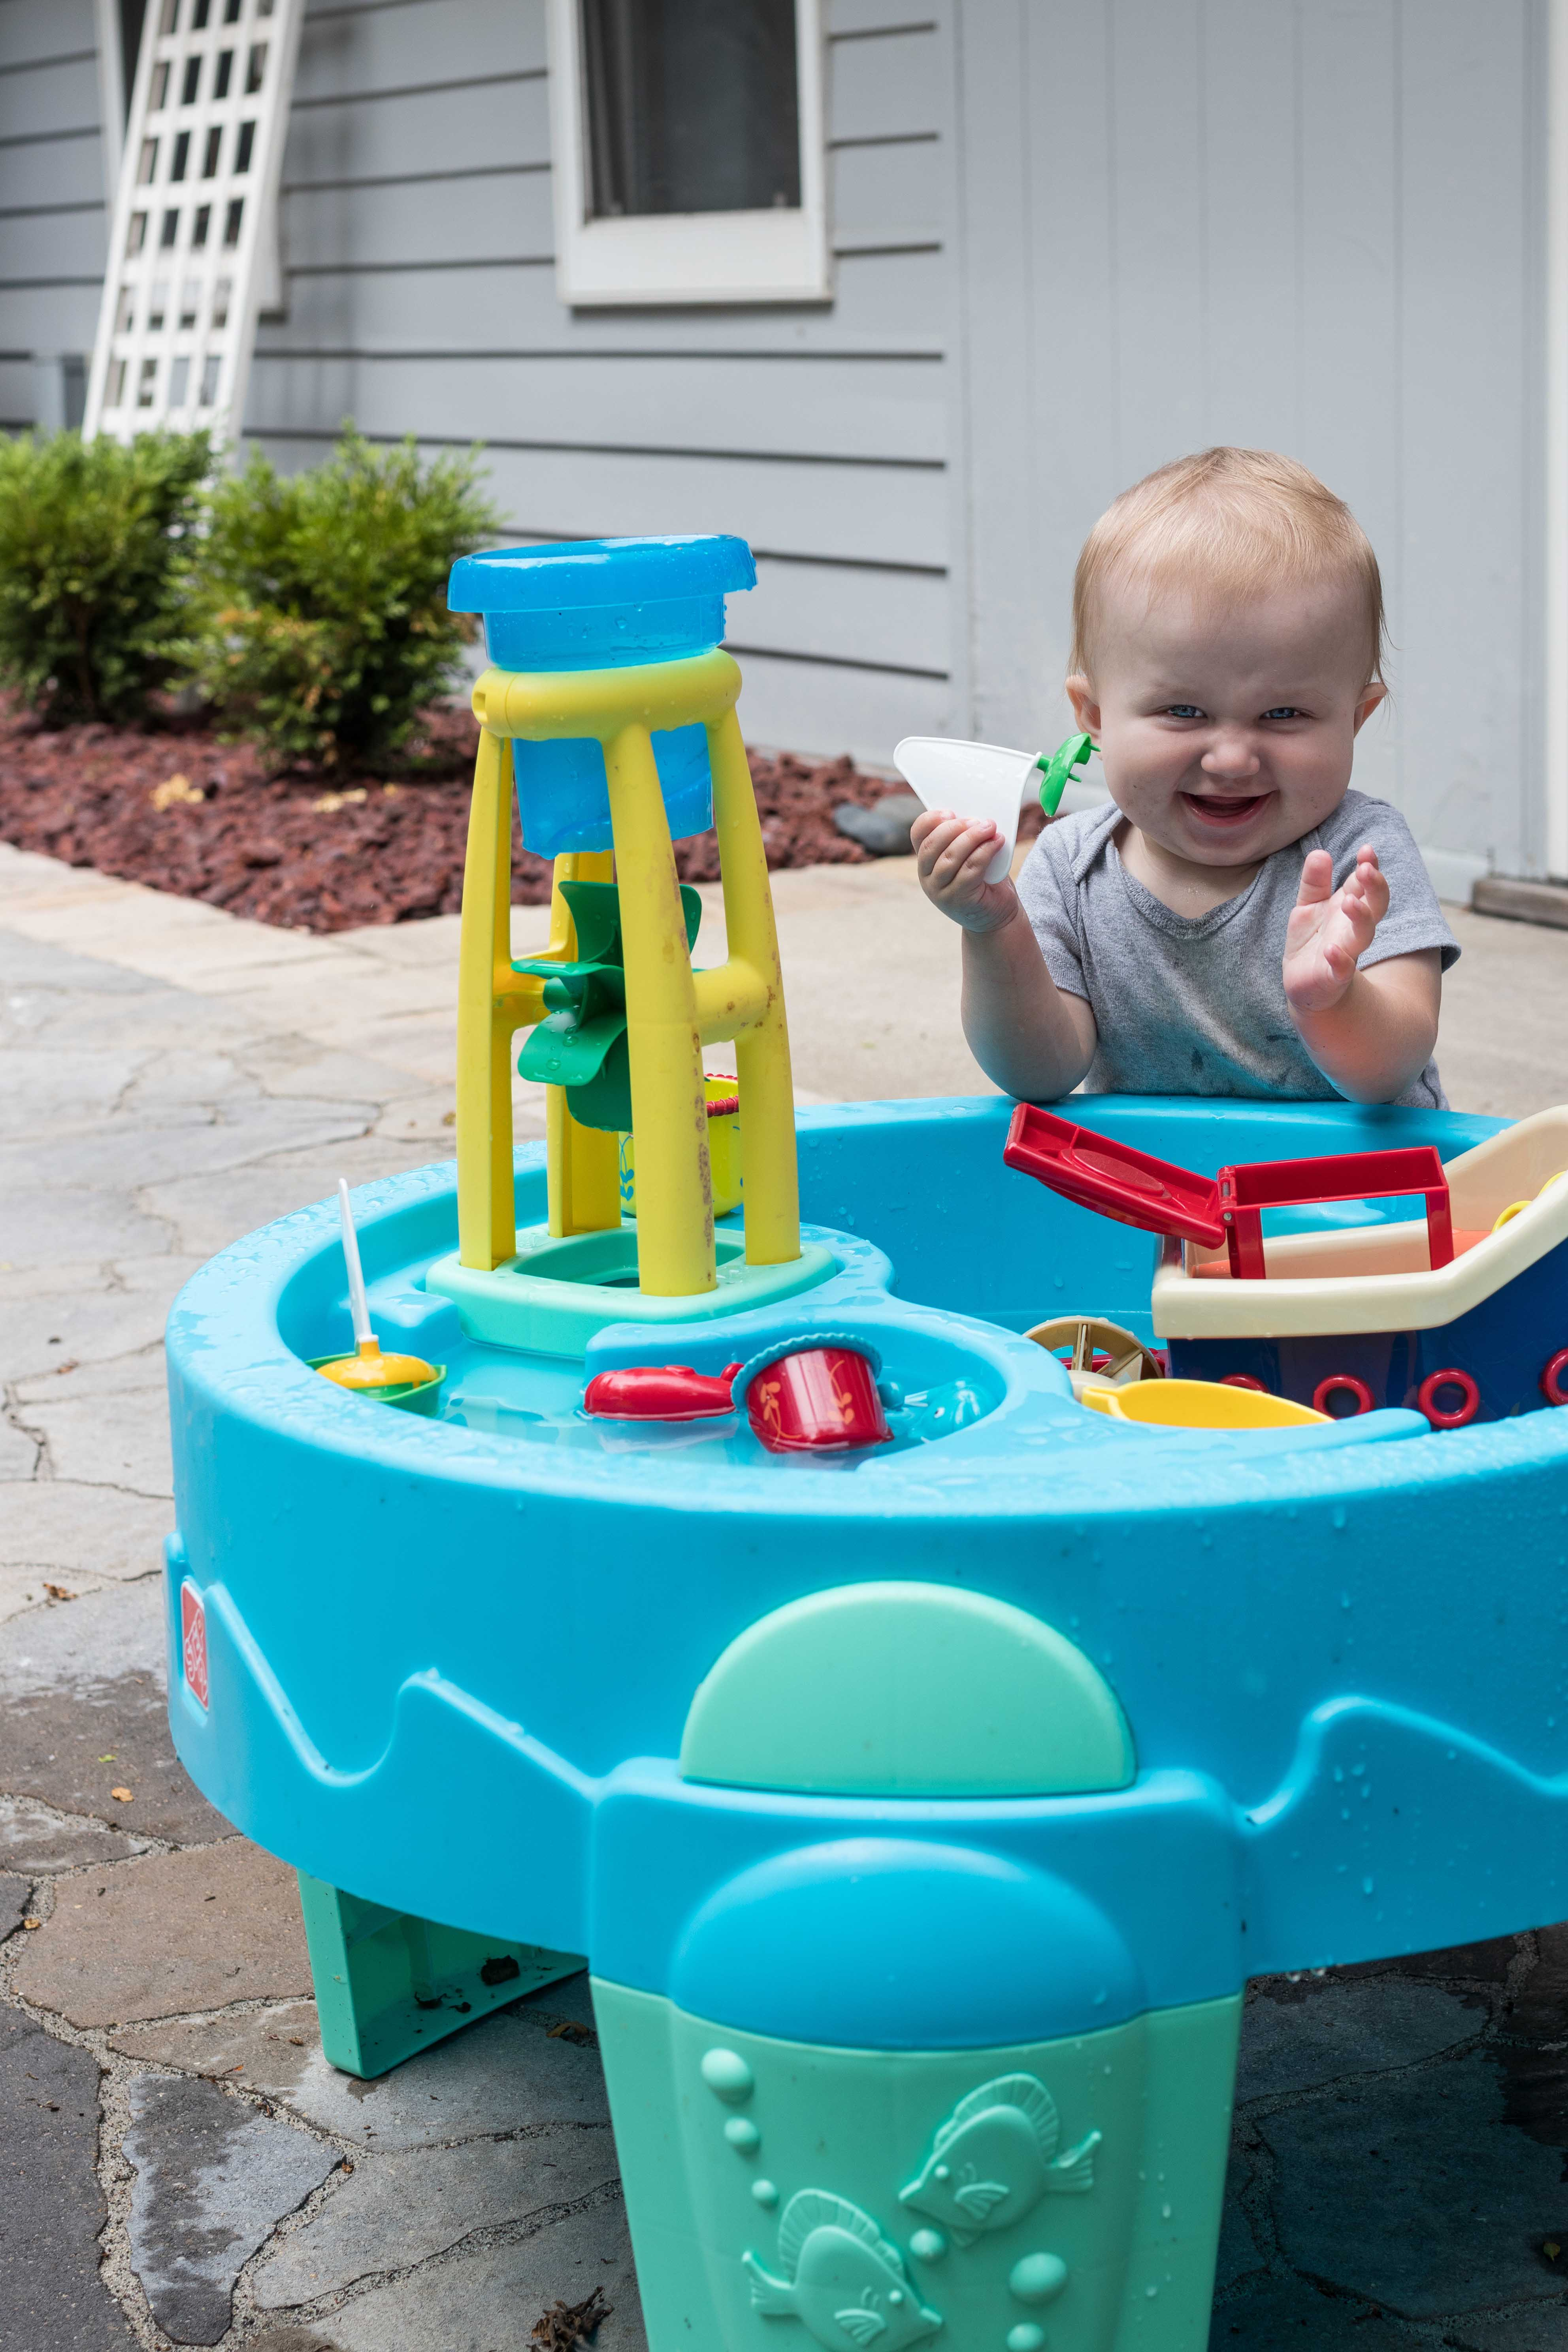 Tommy at the Water Table July 2018 | https://www.roseclearfield.com